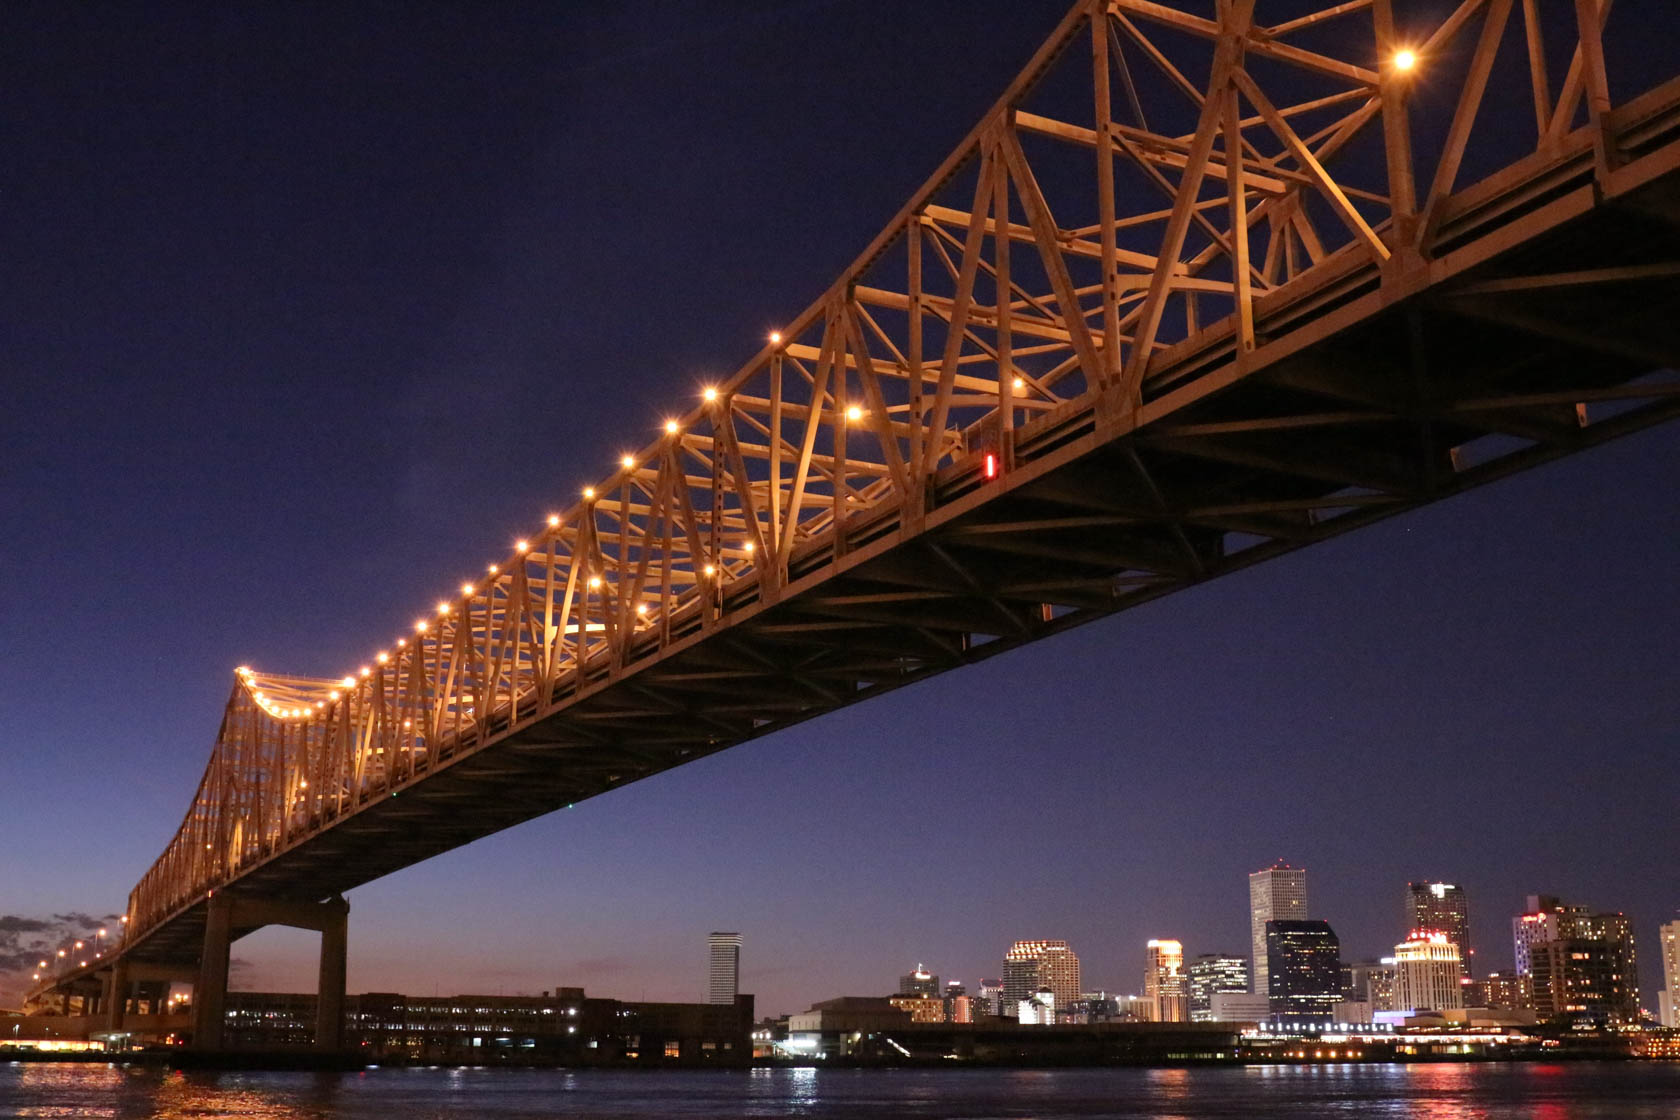 Bridge at night taken with Canon EOS 700D DSLR camera